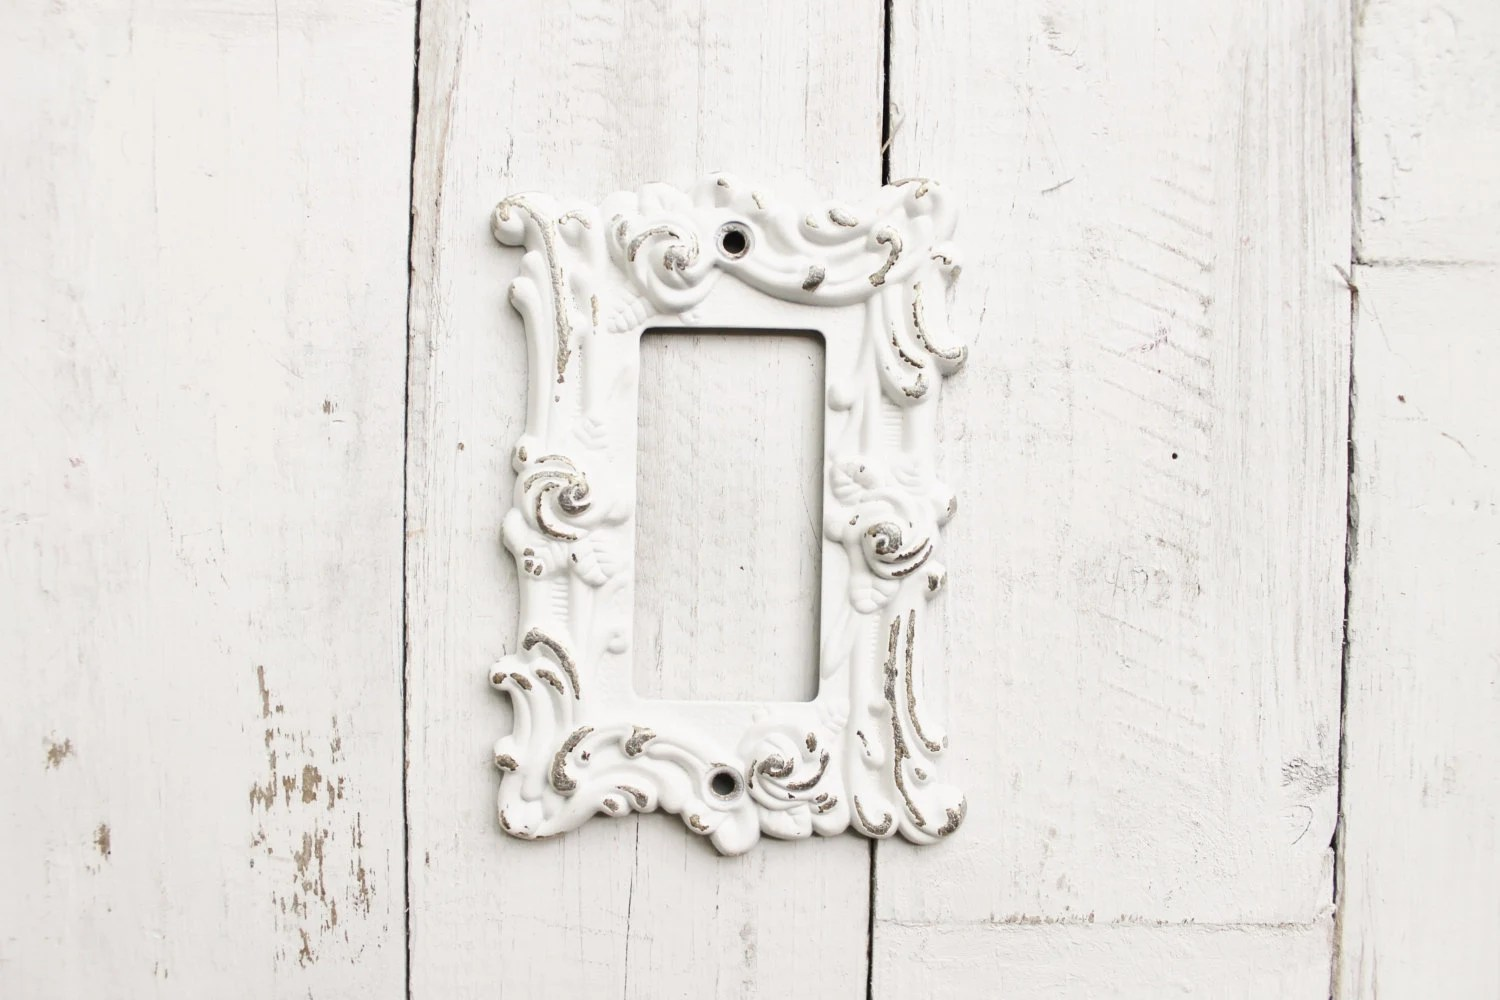 Metal Wall Decor Light Switch Cover In Shabby White Gfi